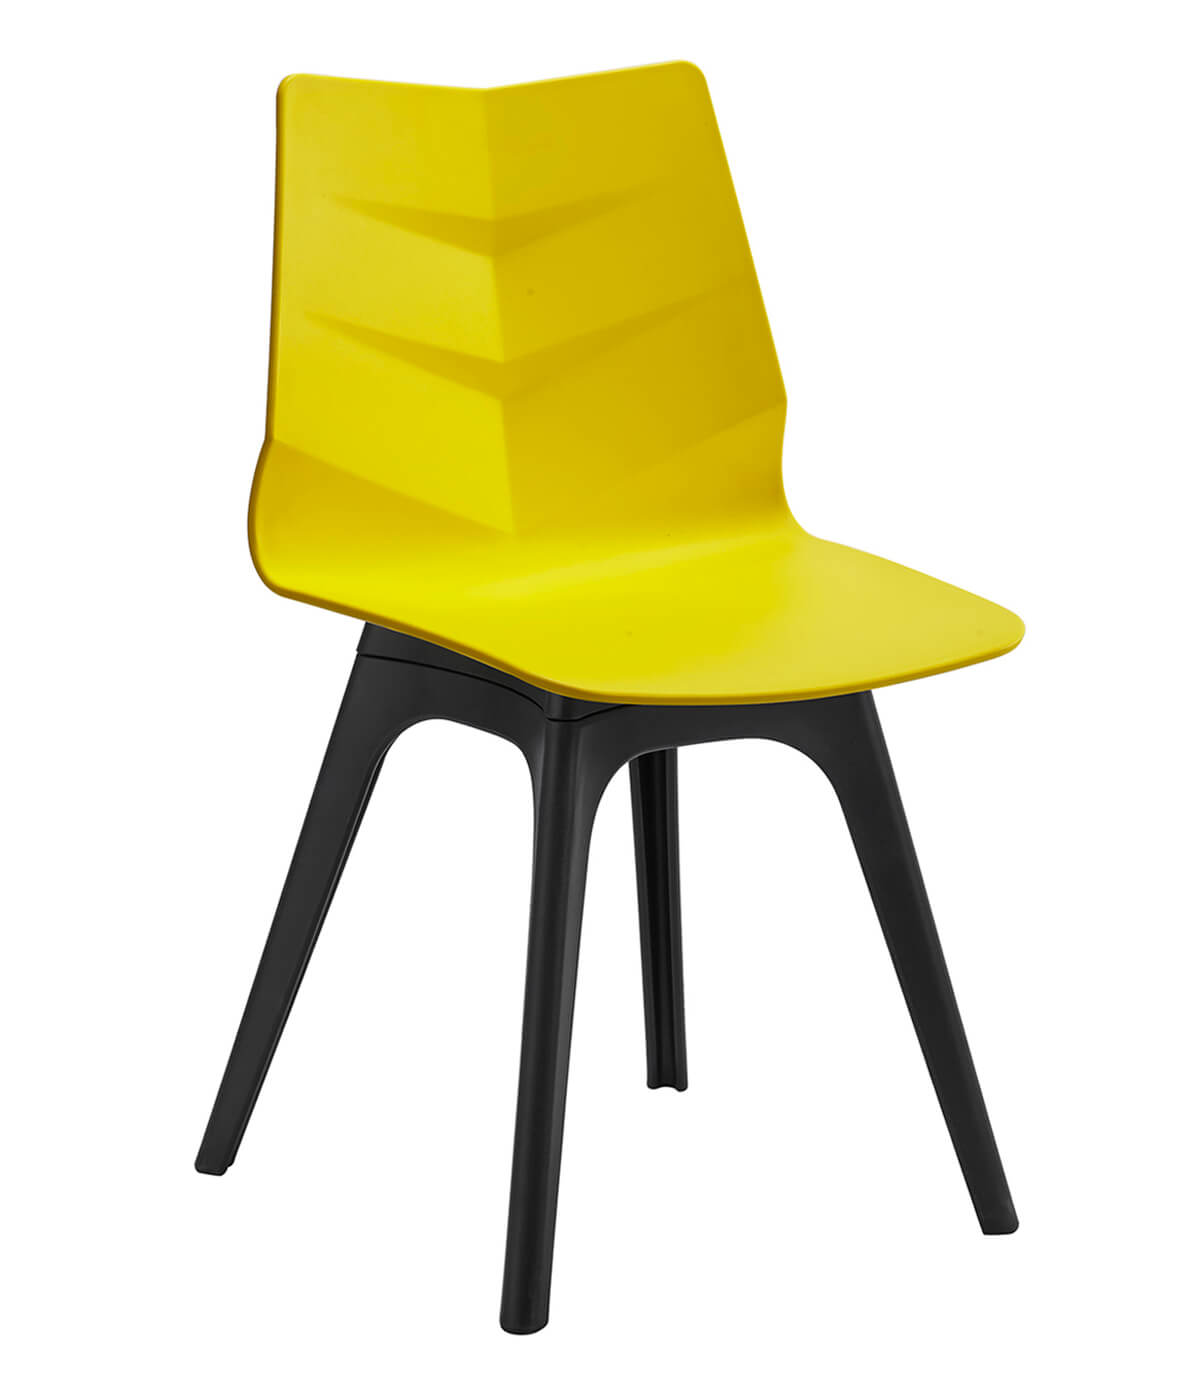 yellow dining chairs furniture supplier uk manchester furniture 11663